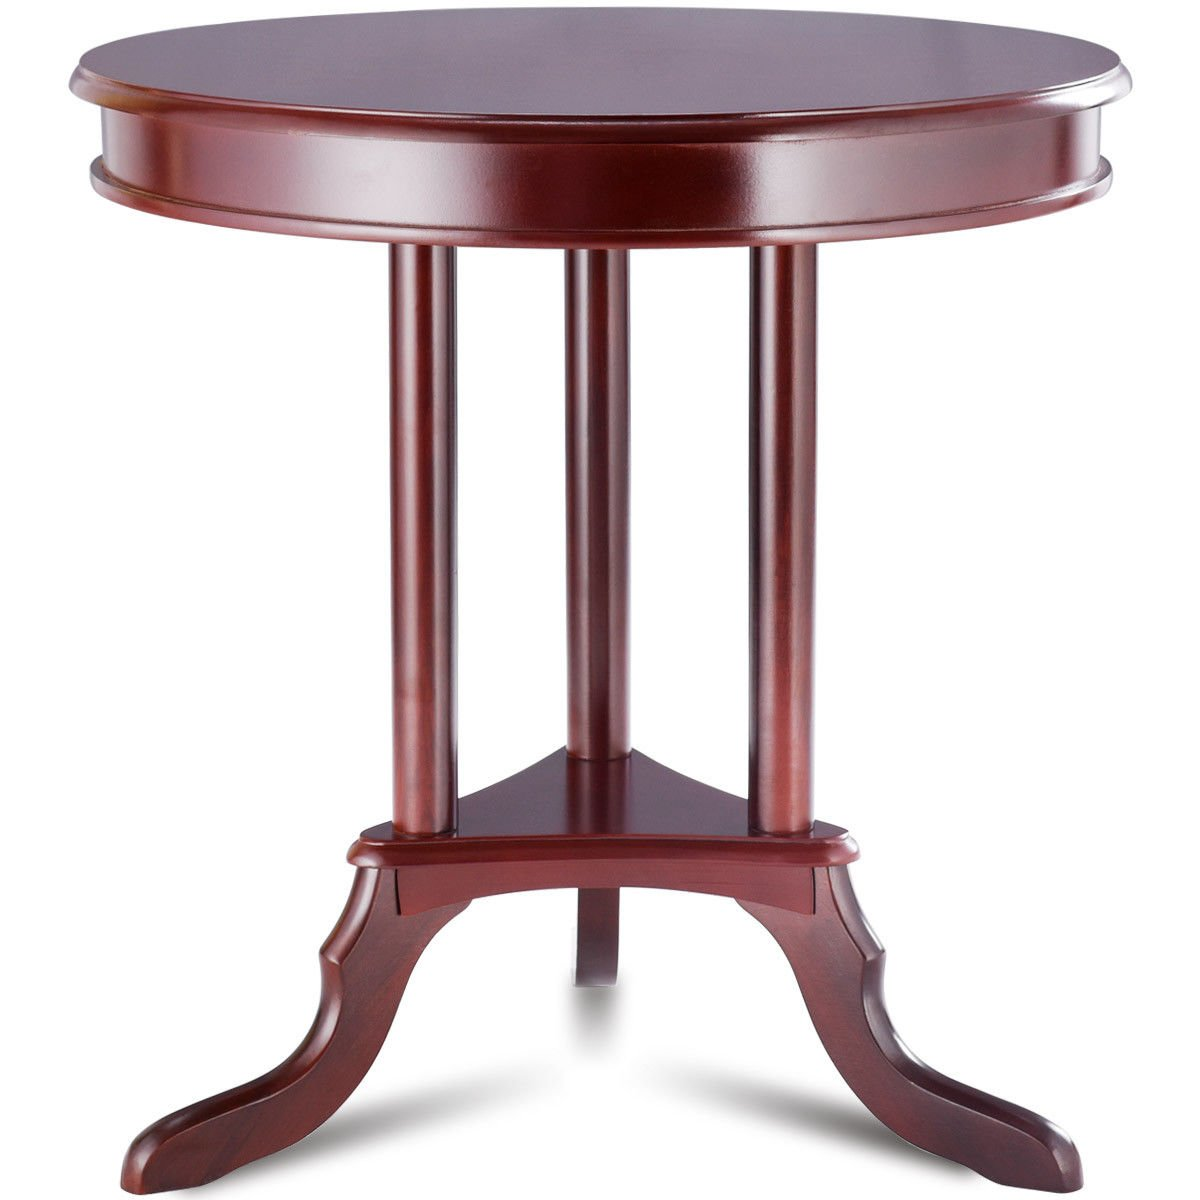 giantex round accent table end side home furnishing shelf slanted legs kitchen dining patio furniture with umbrella drum throne high bedside console desk drawers very mirrored